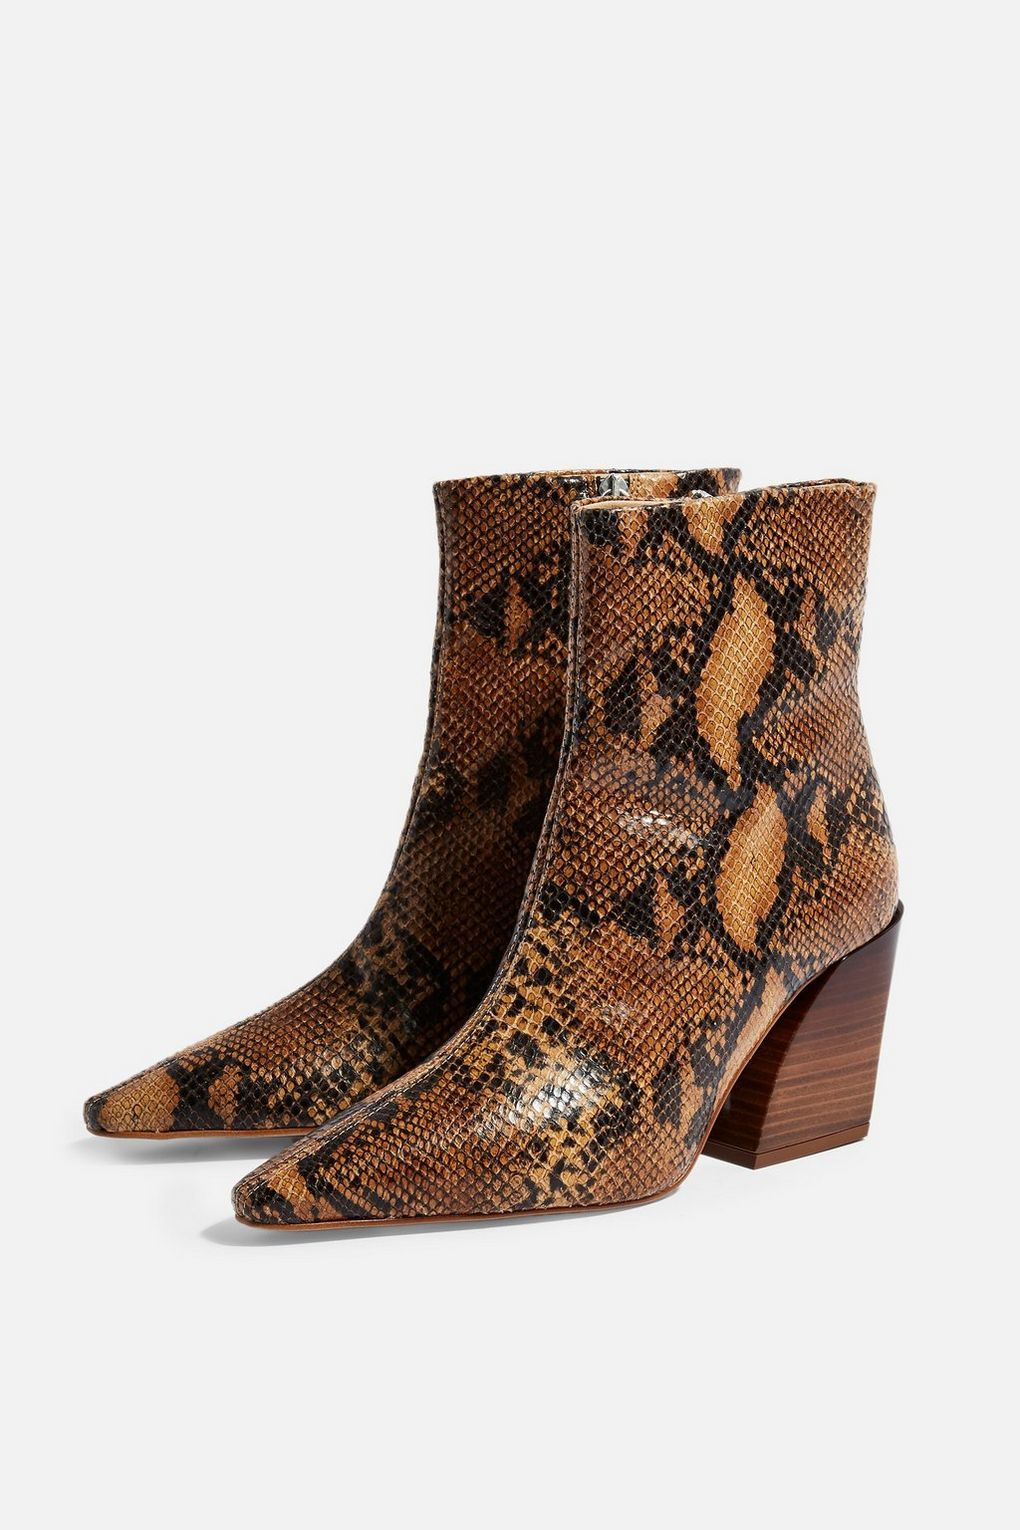 61bc36e43a9 HENLEY Western Boots - Heels - Shoes - Topshop USA